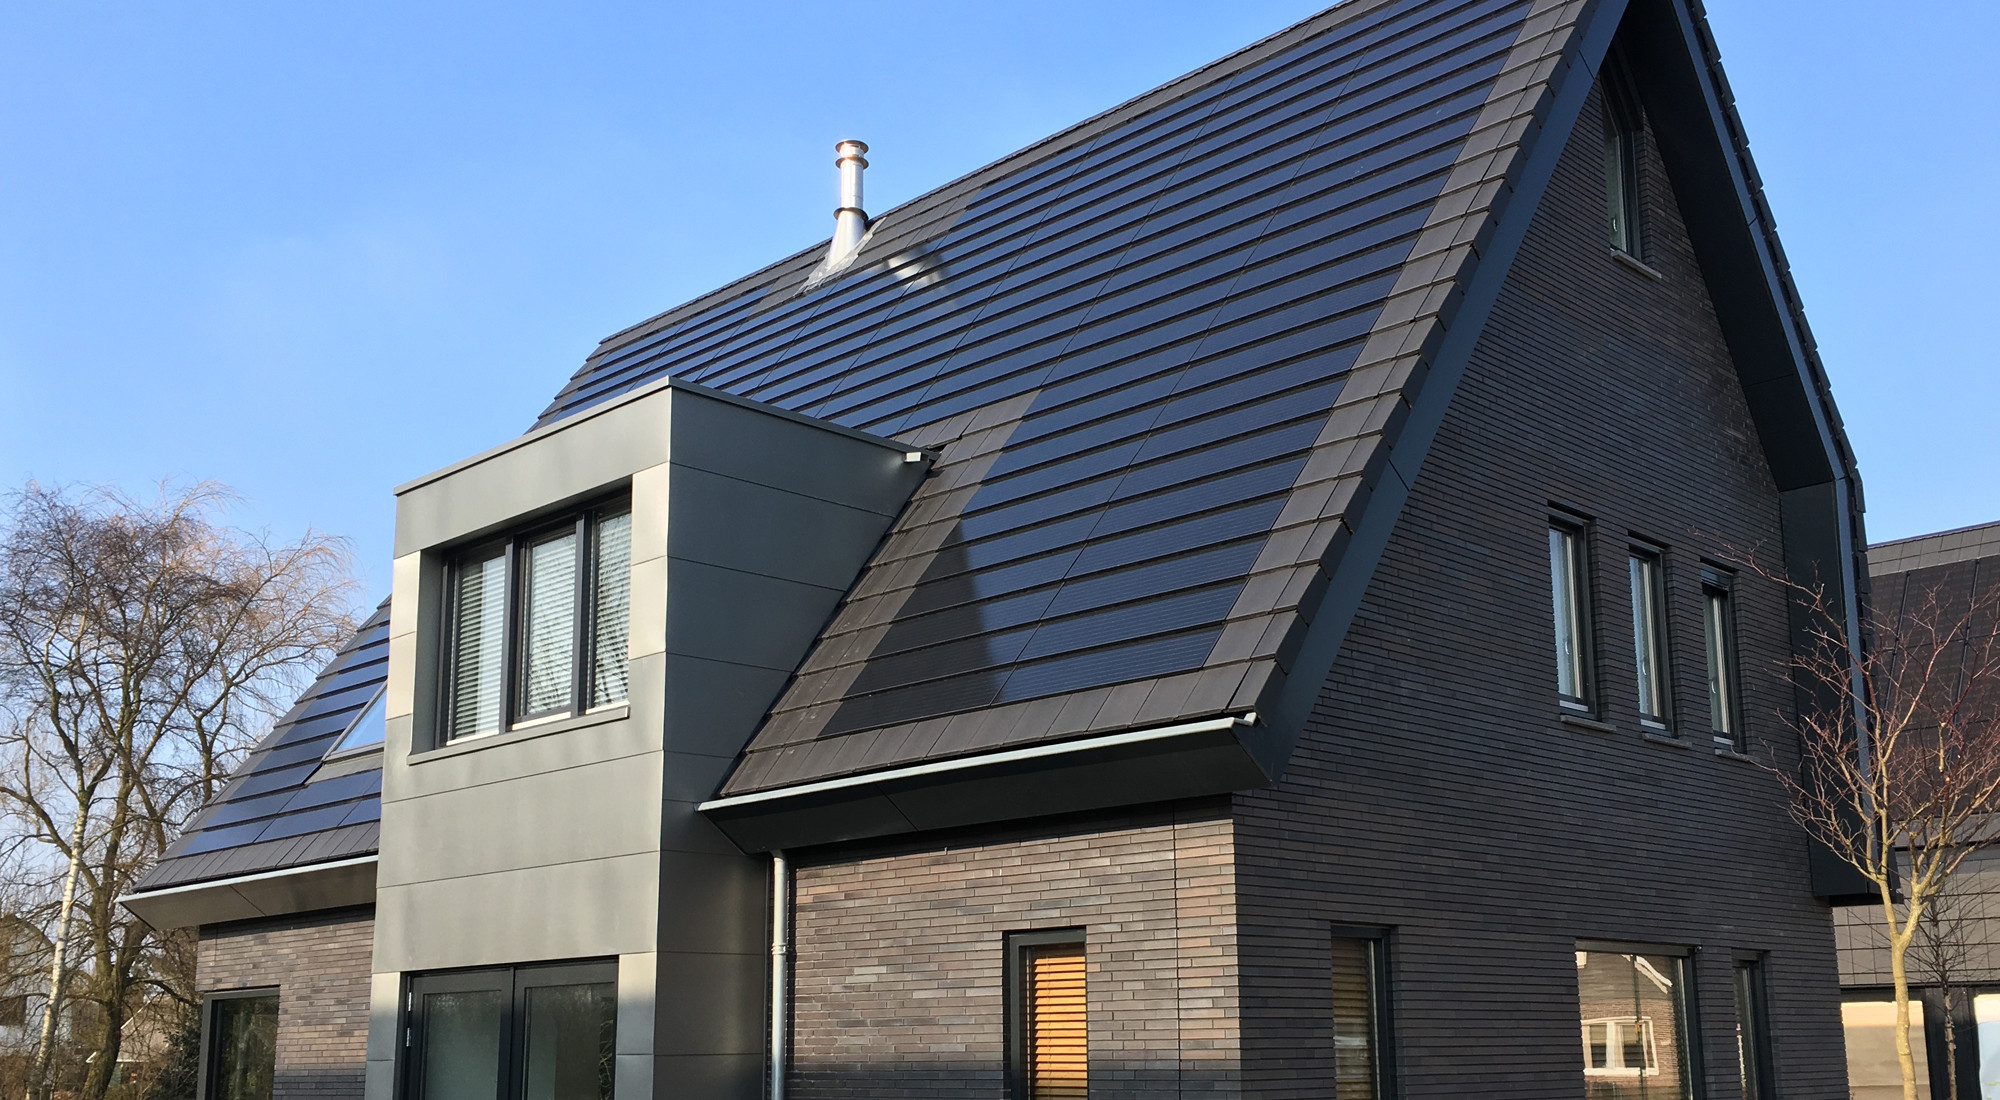 Planum Concrete Roof Tiles and Integrated Solar Systems